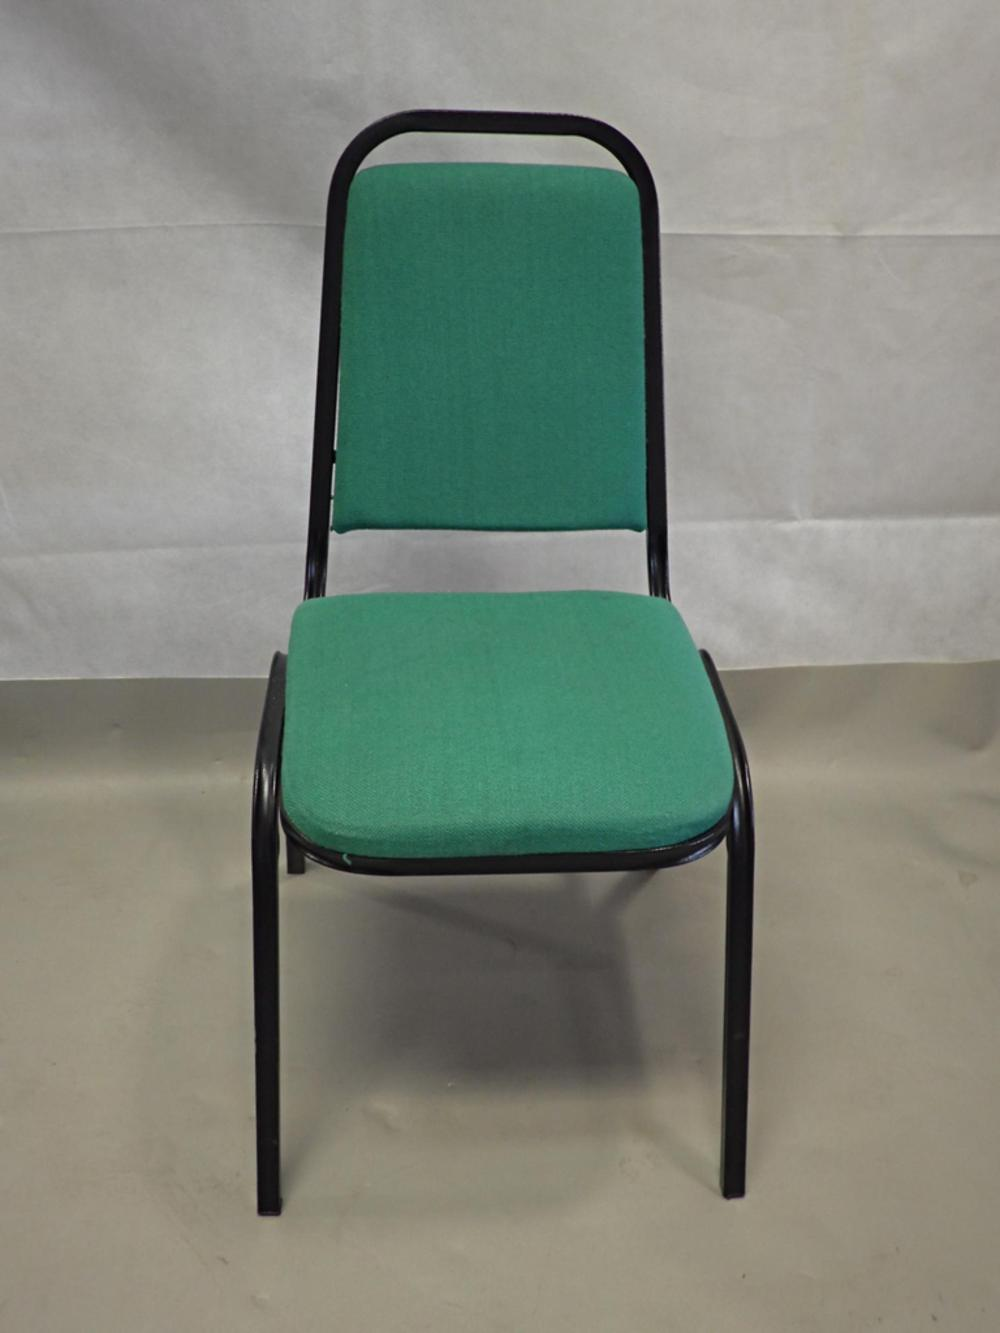 Used Banquet Chairs Green Stacking Banquet Chairs Sos Office Supplies Hull